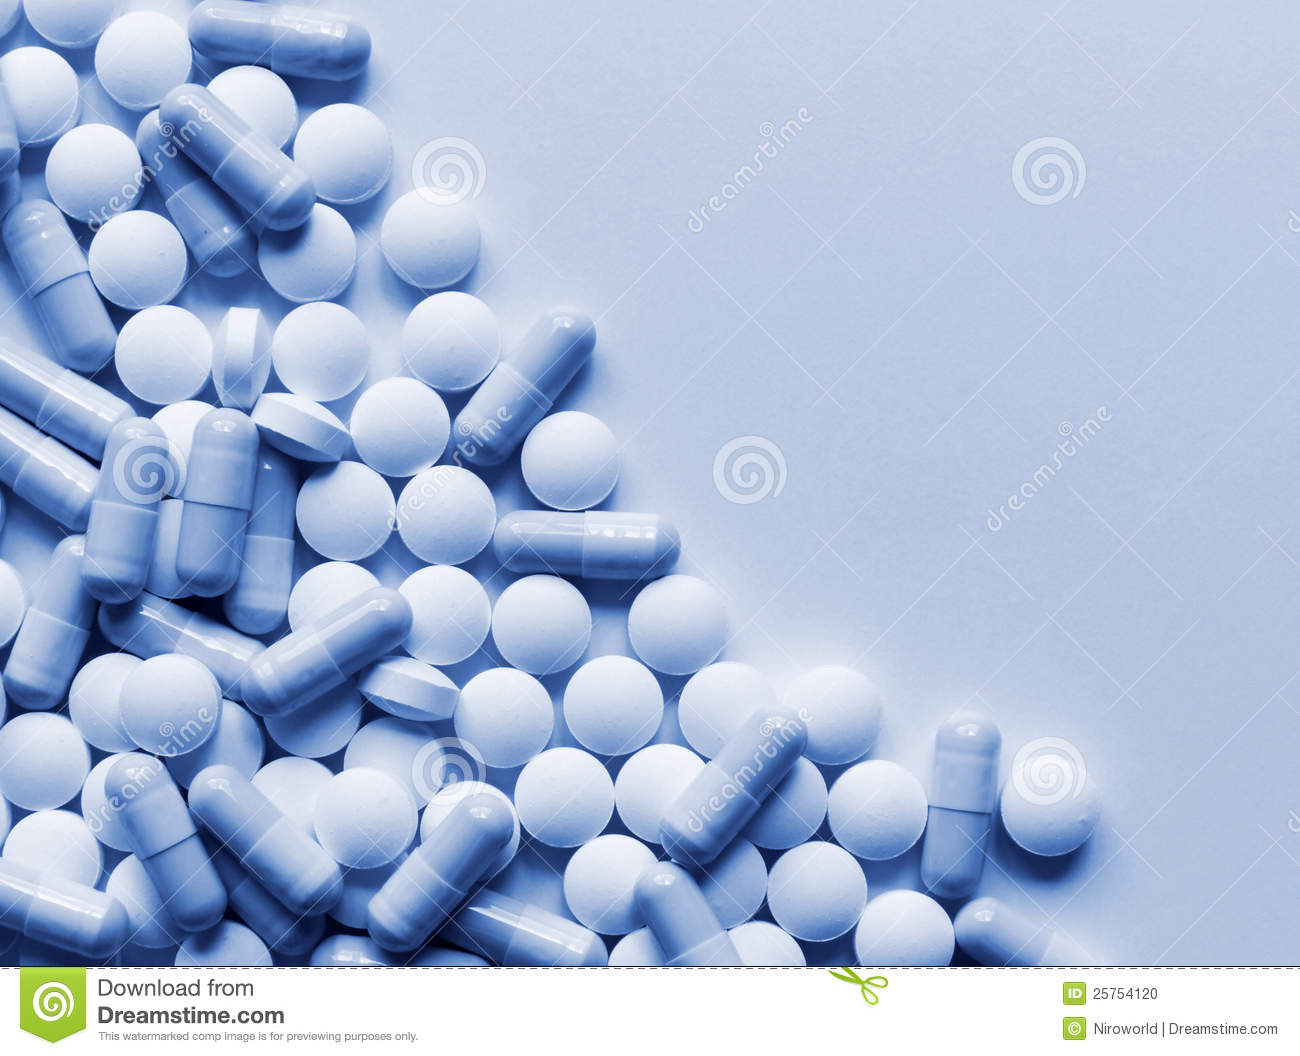 states map of the united with Stock Photo Pills Medicine Background Image25754120 on North Philadelphia together with Jet Charters To Chicago Illinois further Kerguelen rail  work also File Okfuskee County Map 1972 additionally Stock Photo Pills Medicine Background Image25754120.